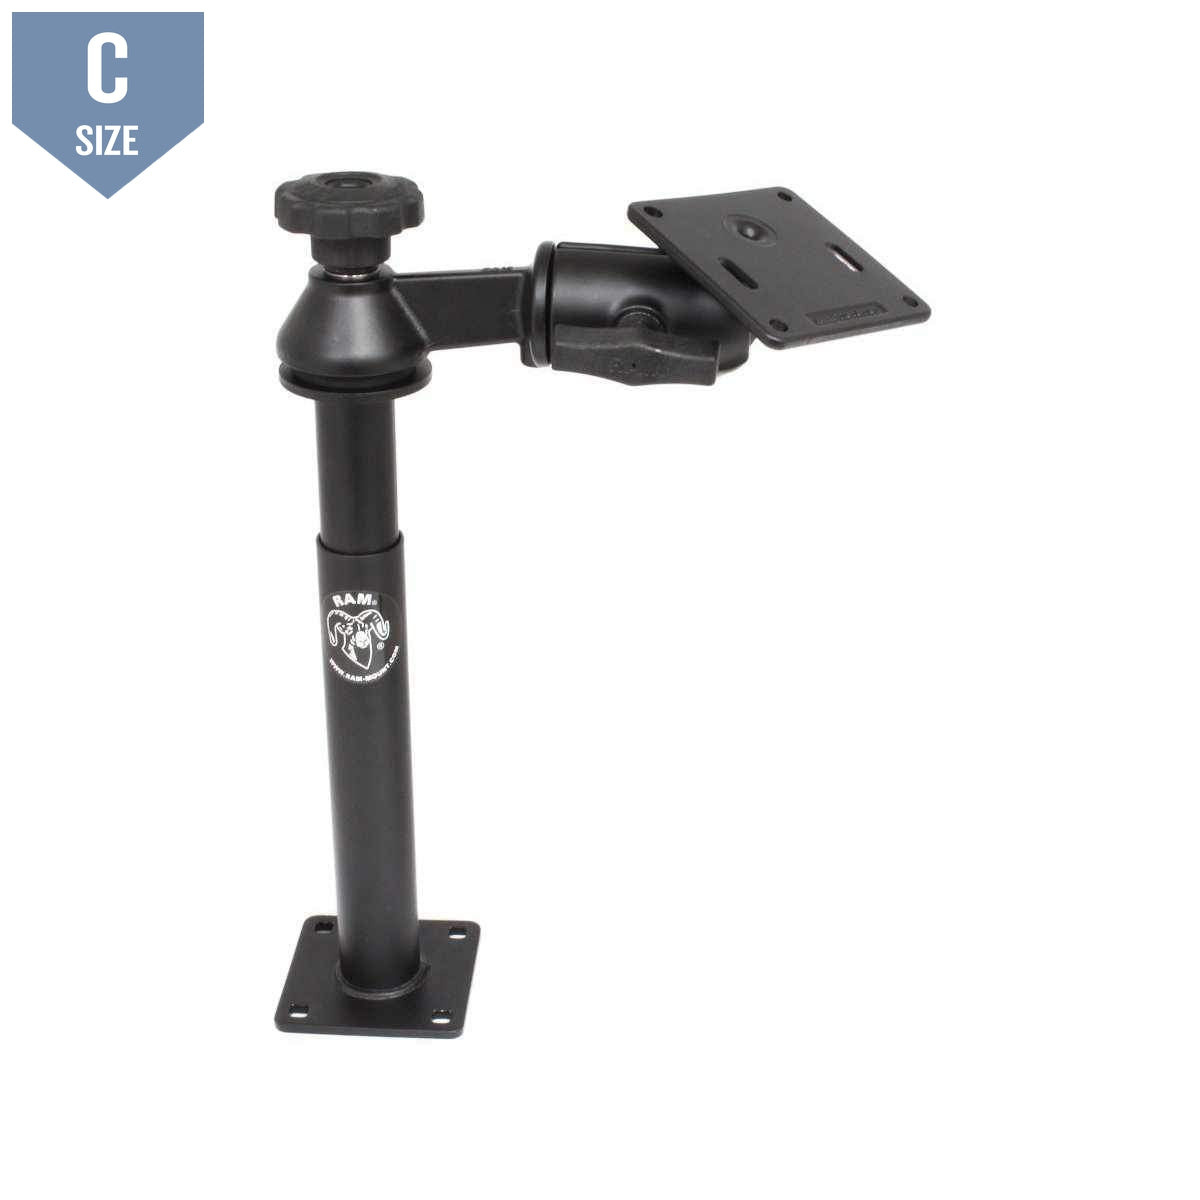 RAM Swing Arm w Male & Female Tele-Pole 75mm VESA (RAM-VP-SW2-89-2461) - Modest Mounts